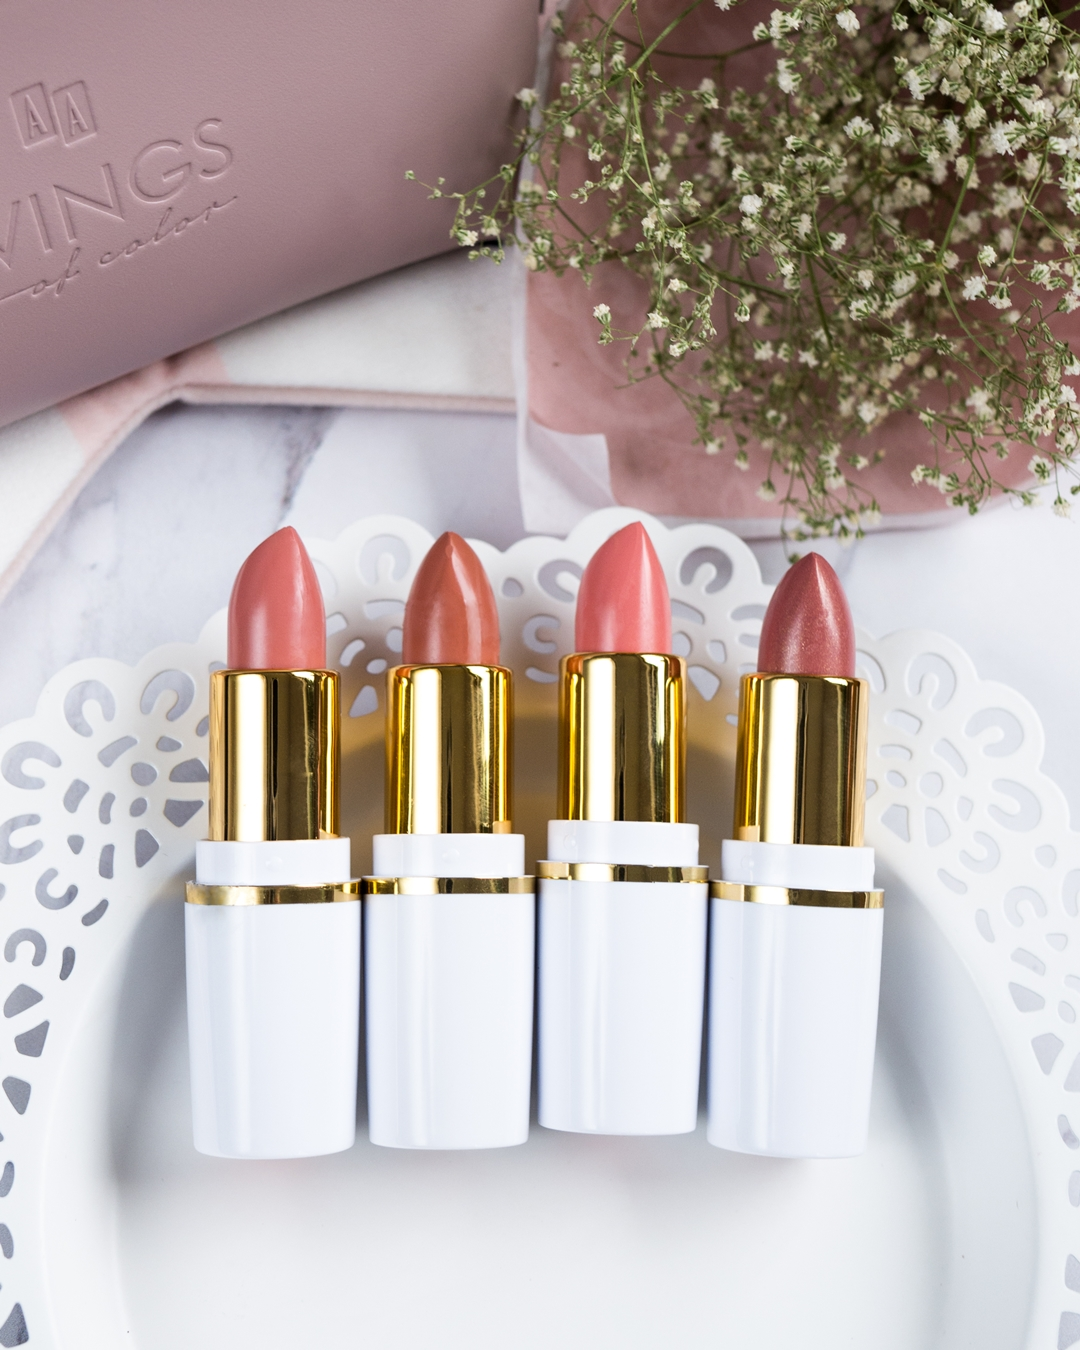 Color Creme od AA Wings of Color 87 Vanilla Nude, 88 Smoky Nude; 89 Blush Nude, 90 Glam Nude